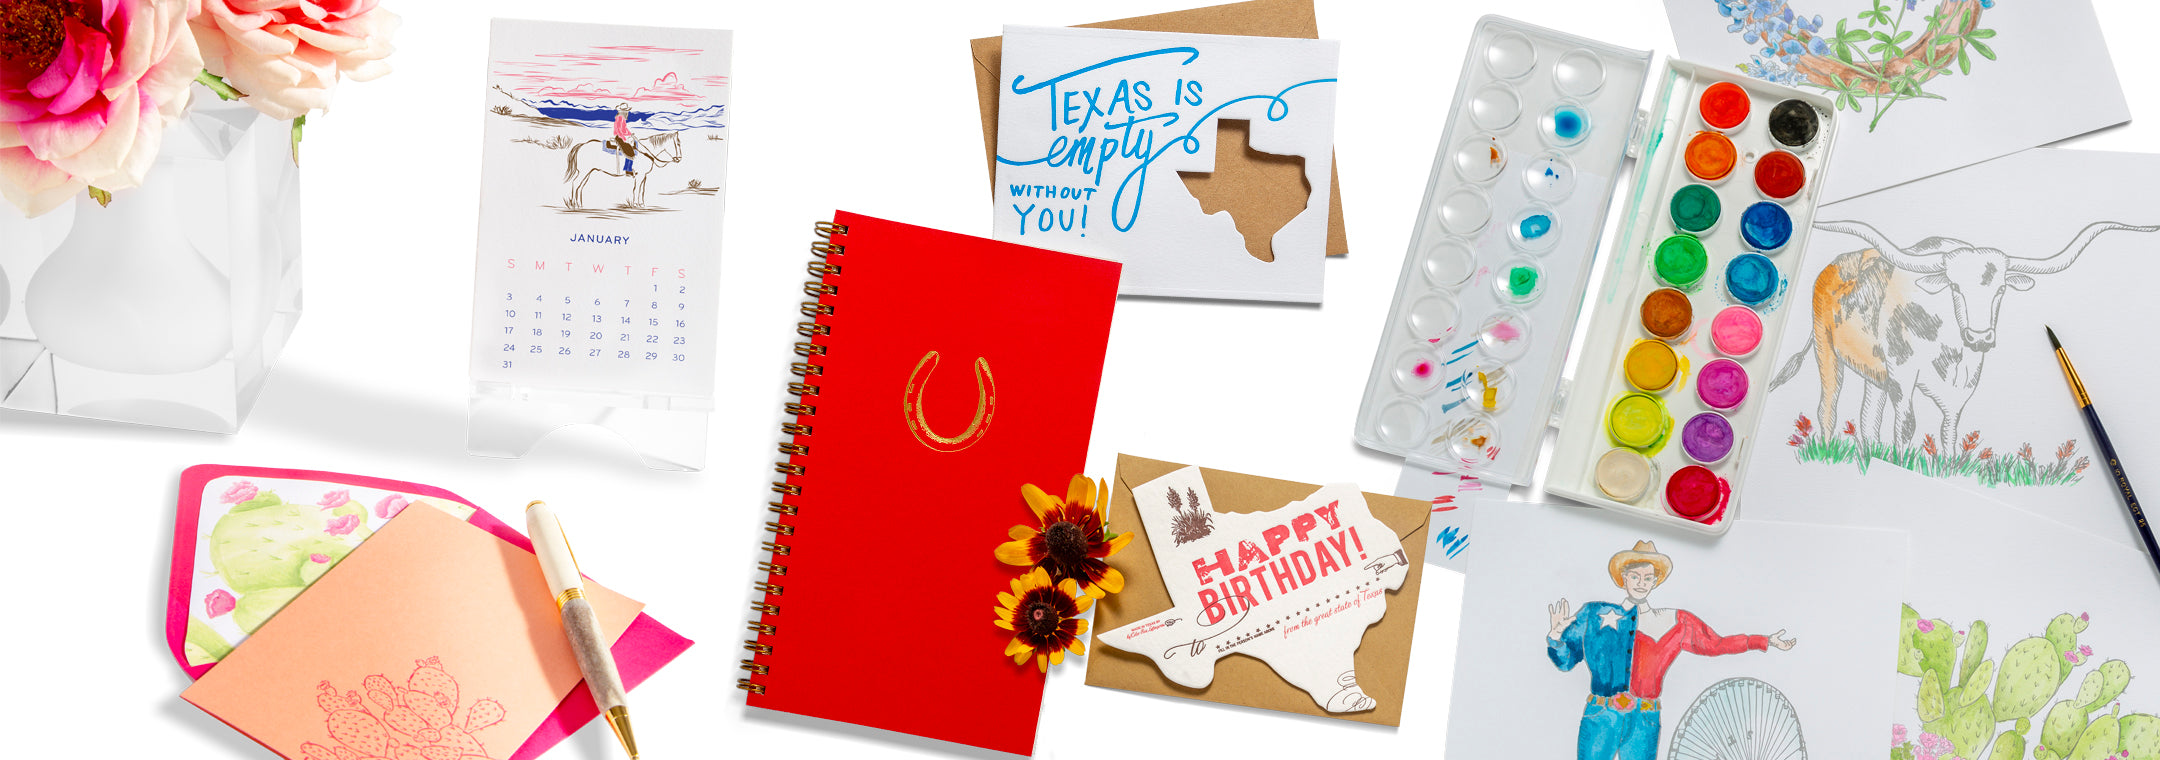 Gift Guides for the Texan